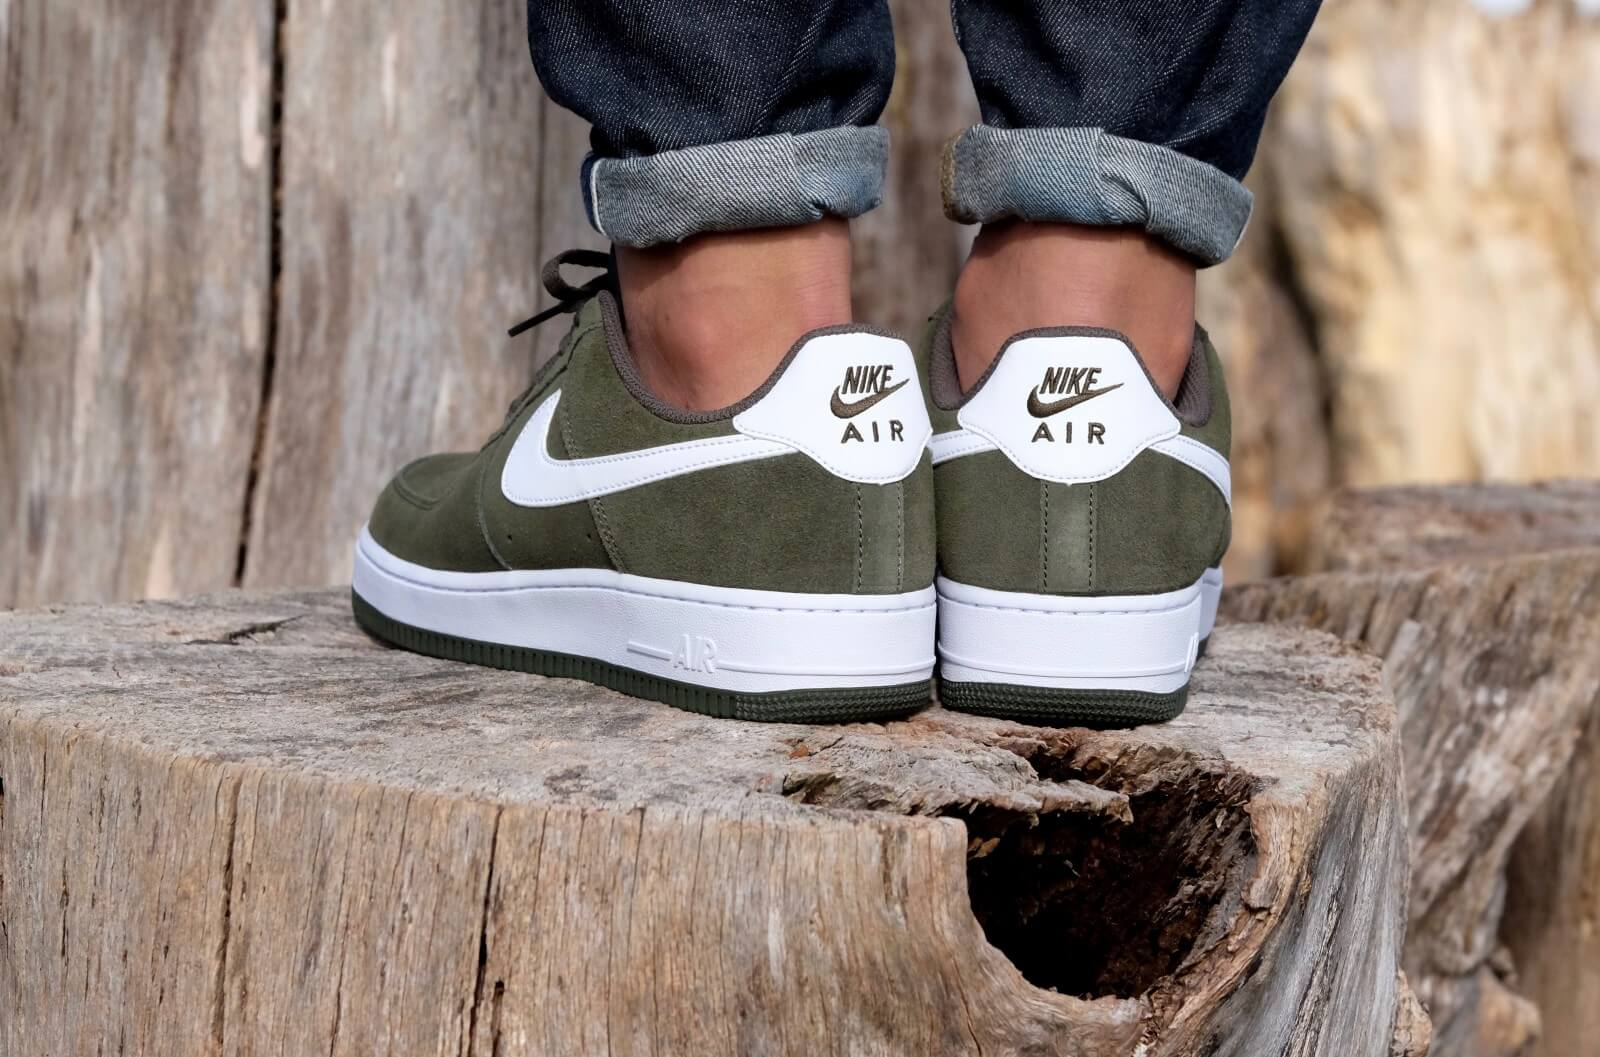 Nike Air Force 1 Cargo Khaki White 820266 301